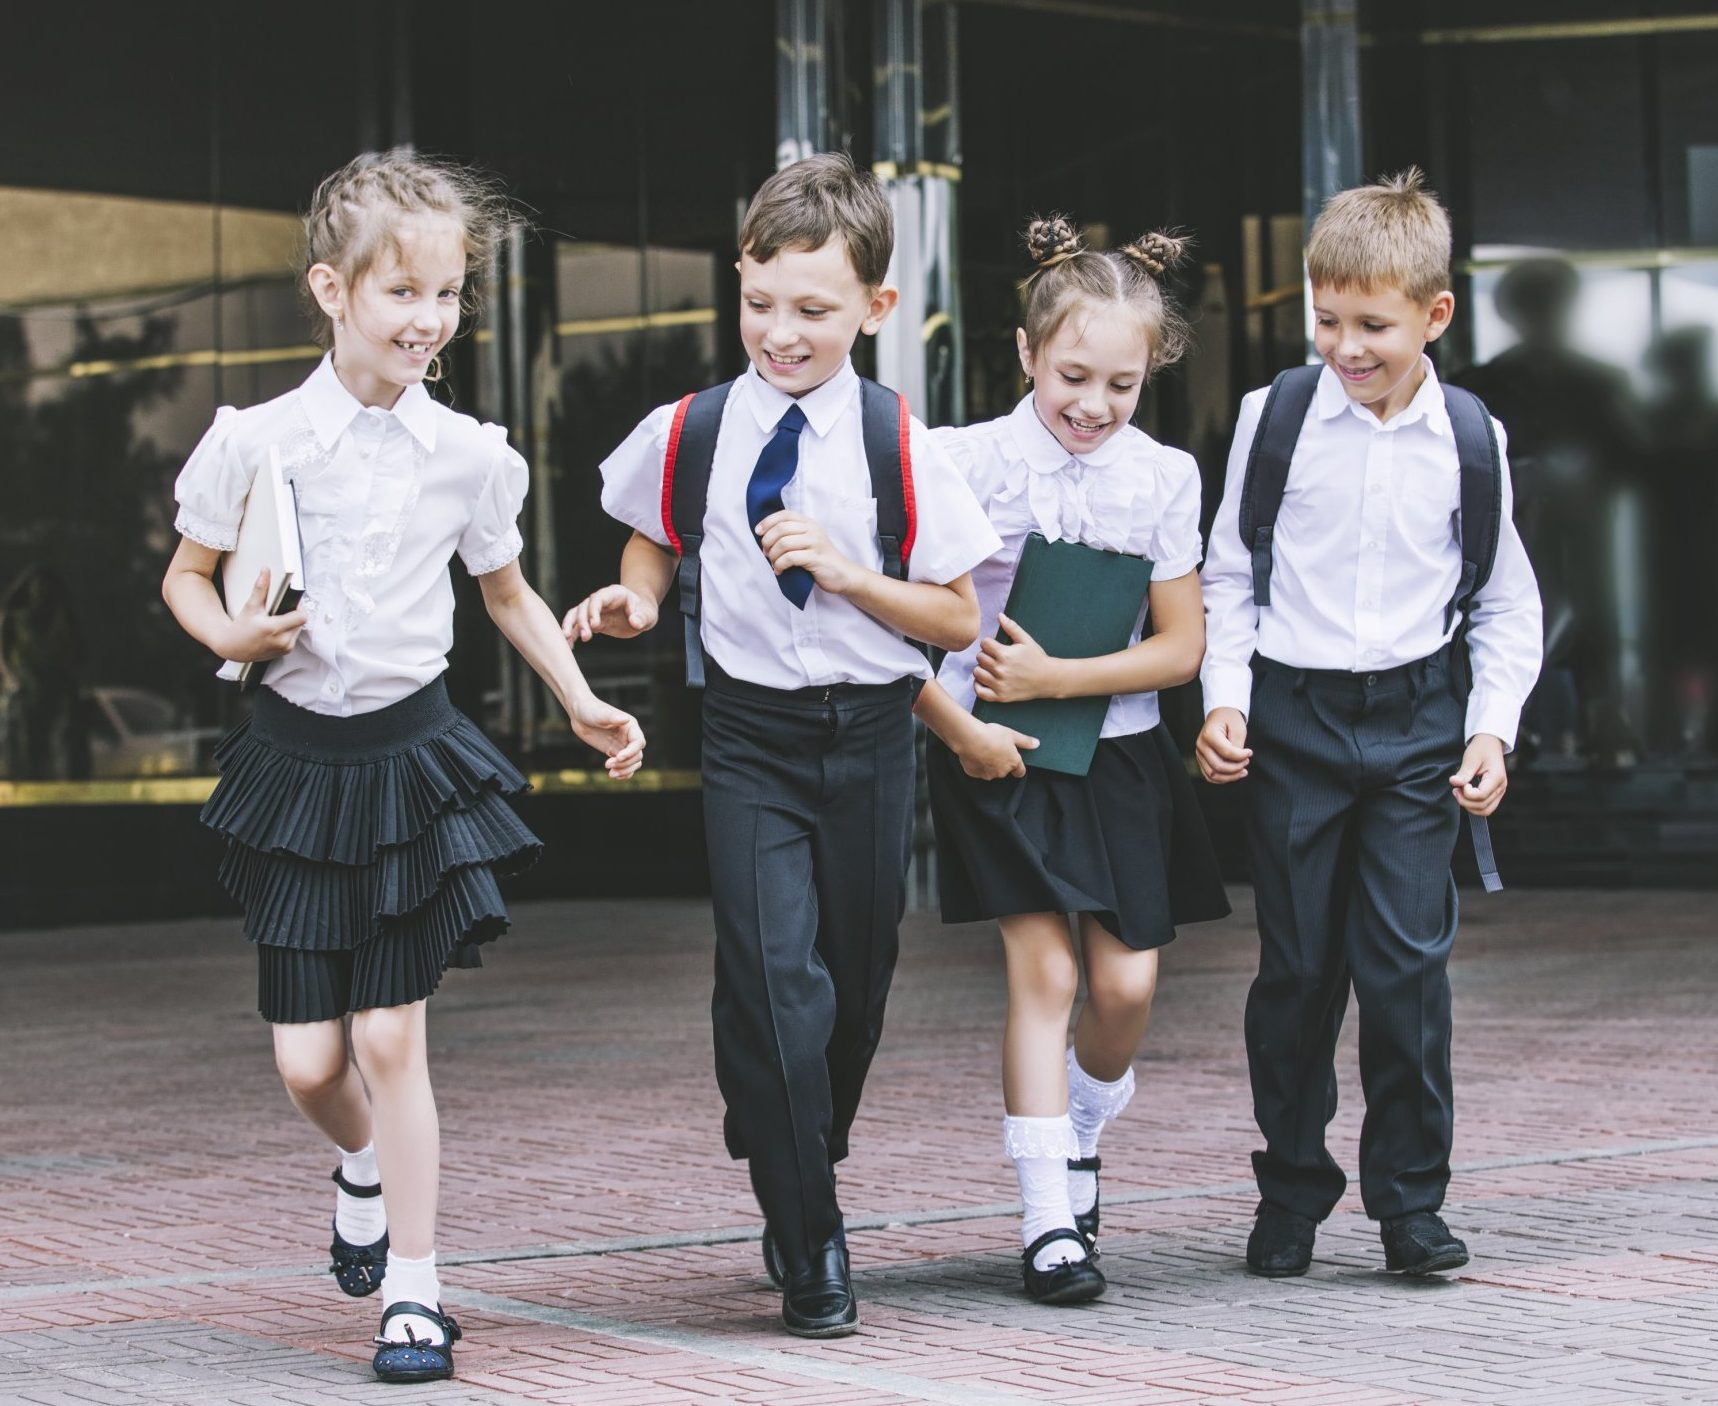 Two in five think boys should be allowed to wear skirts to school